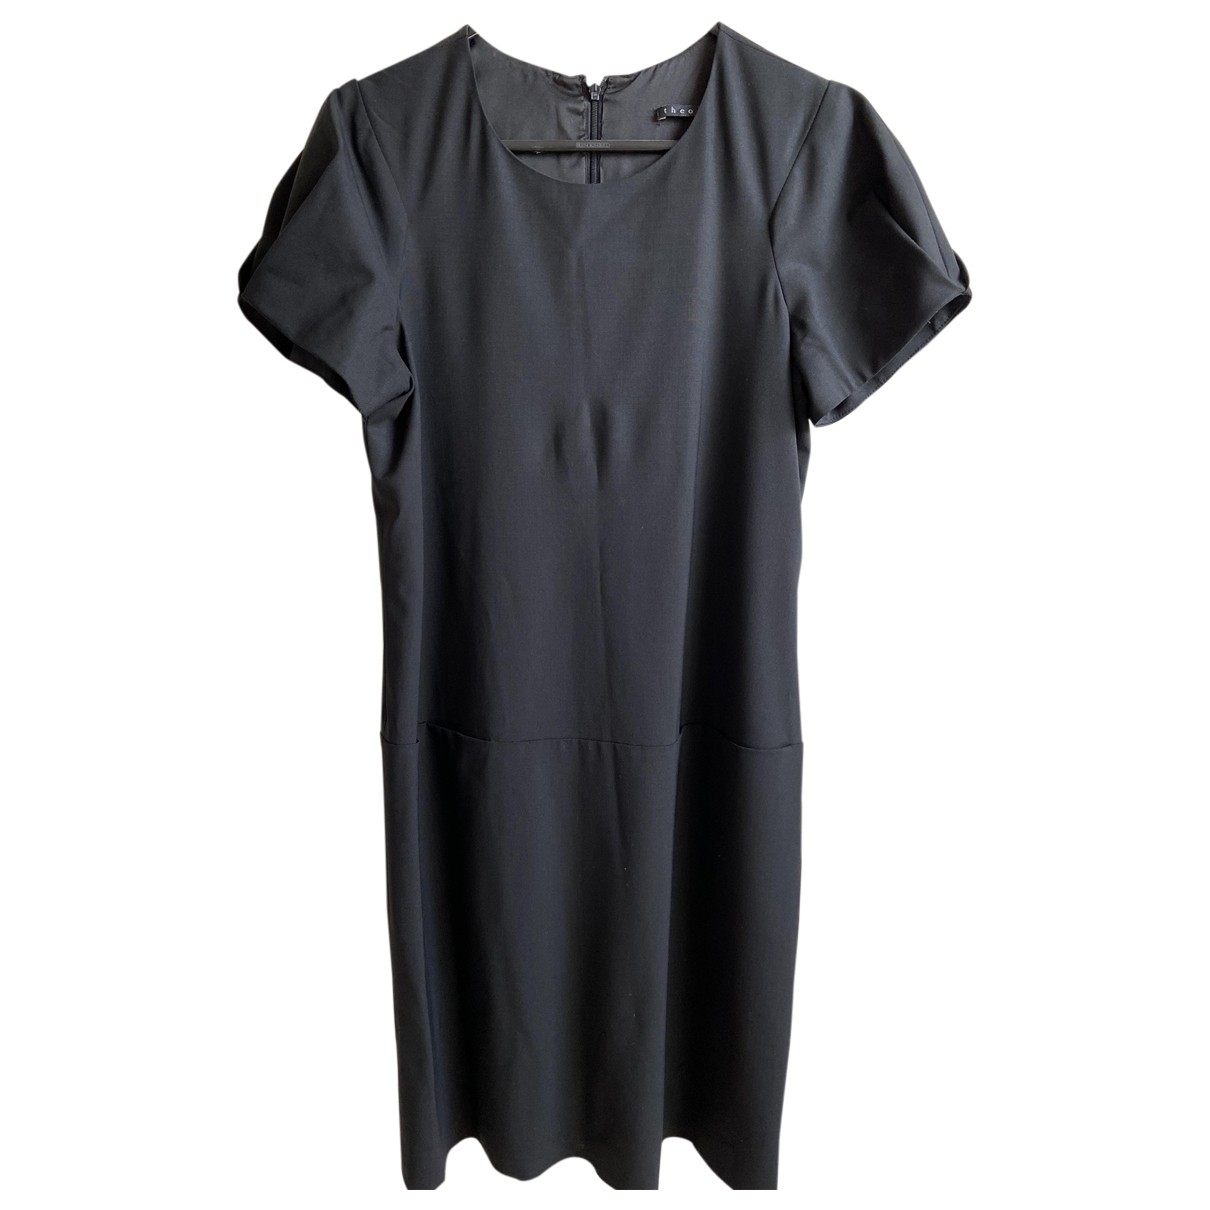 Theory \N Black Cotton dress for Women 8 US